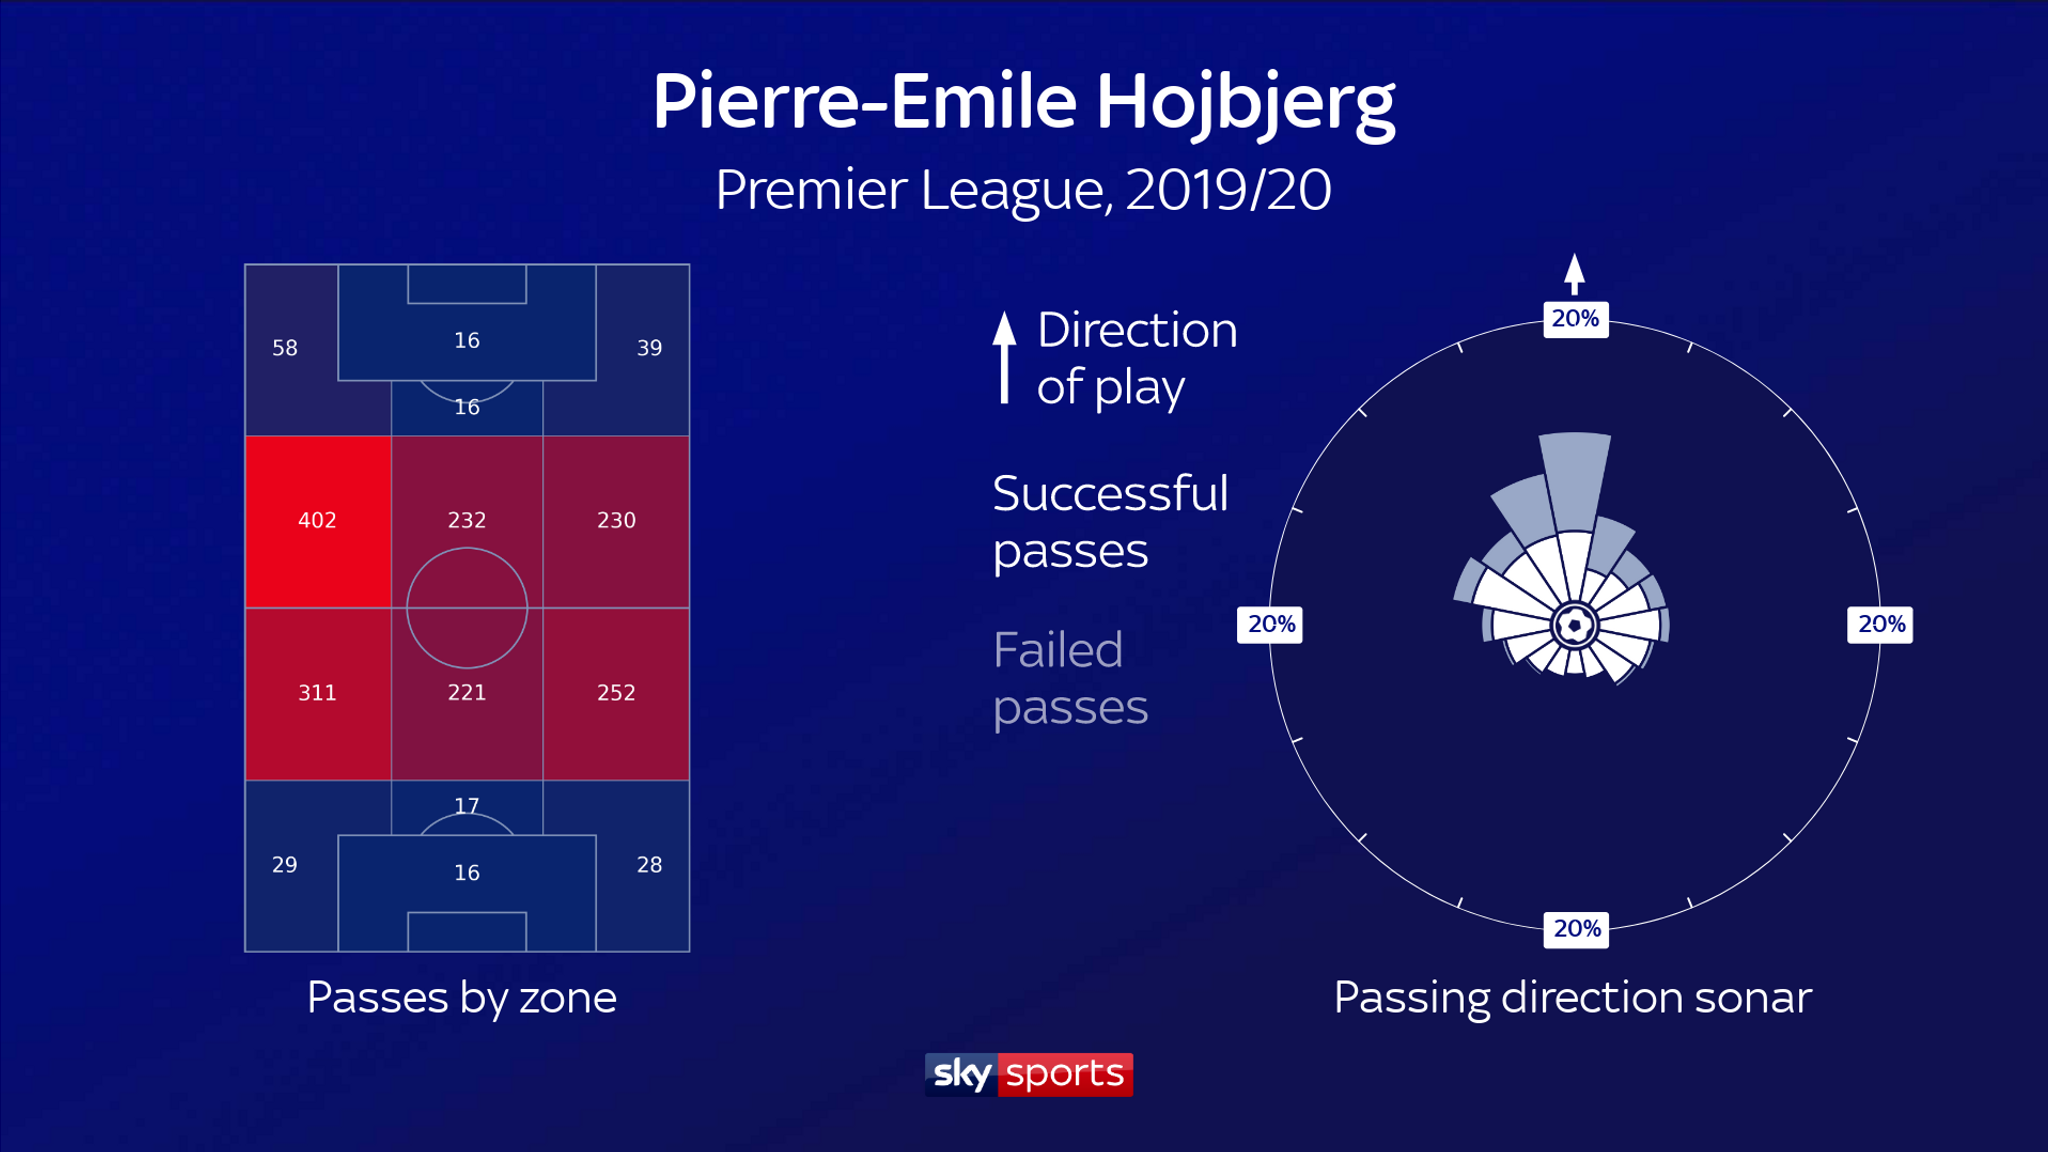 hojbjerg passing direction sky sports